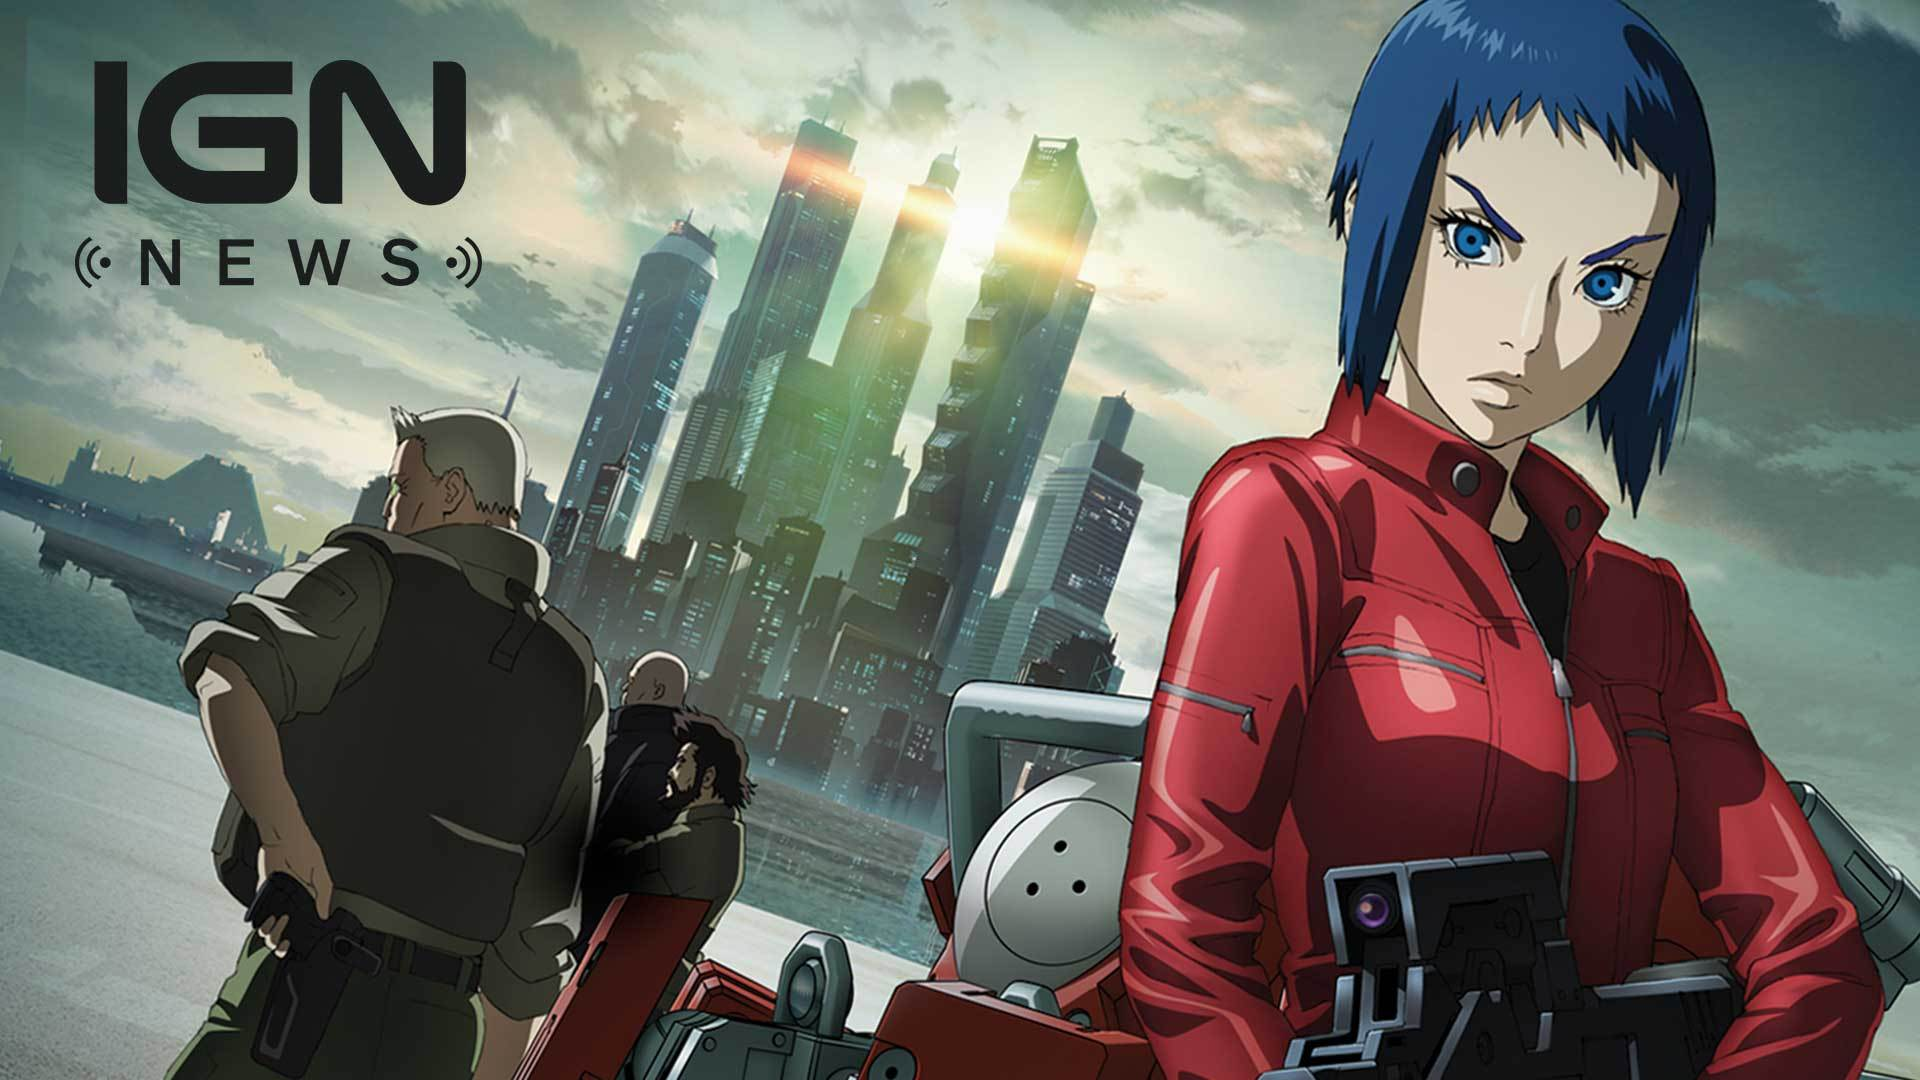 ghost in the shell ign review